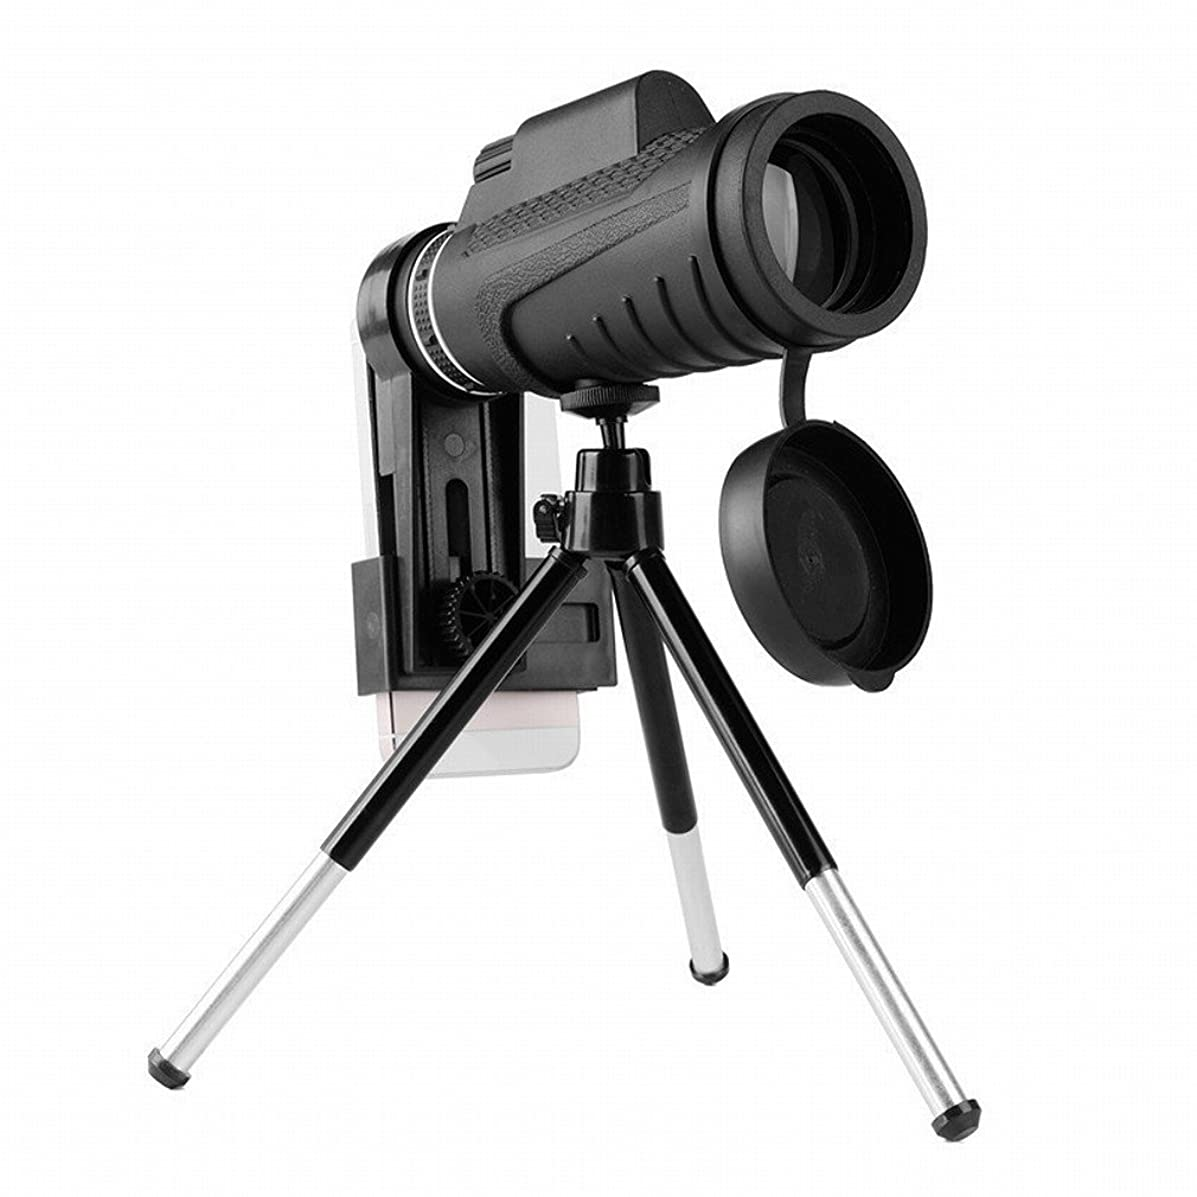 DHG Monocular Telescope High Power Hd Outdoor Night Vision Can Be Mobile Phone Video Camera Telescope